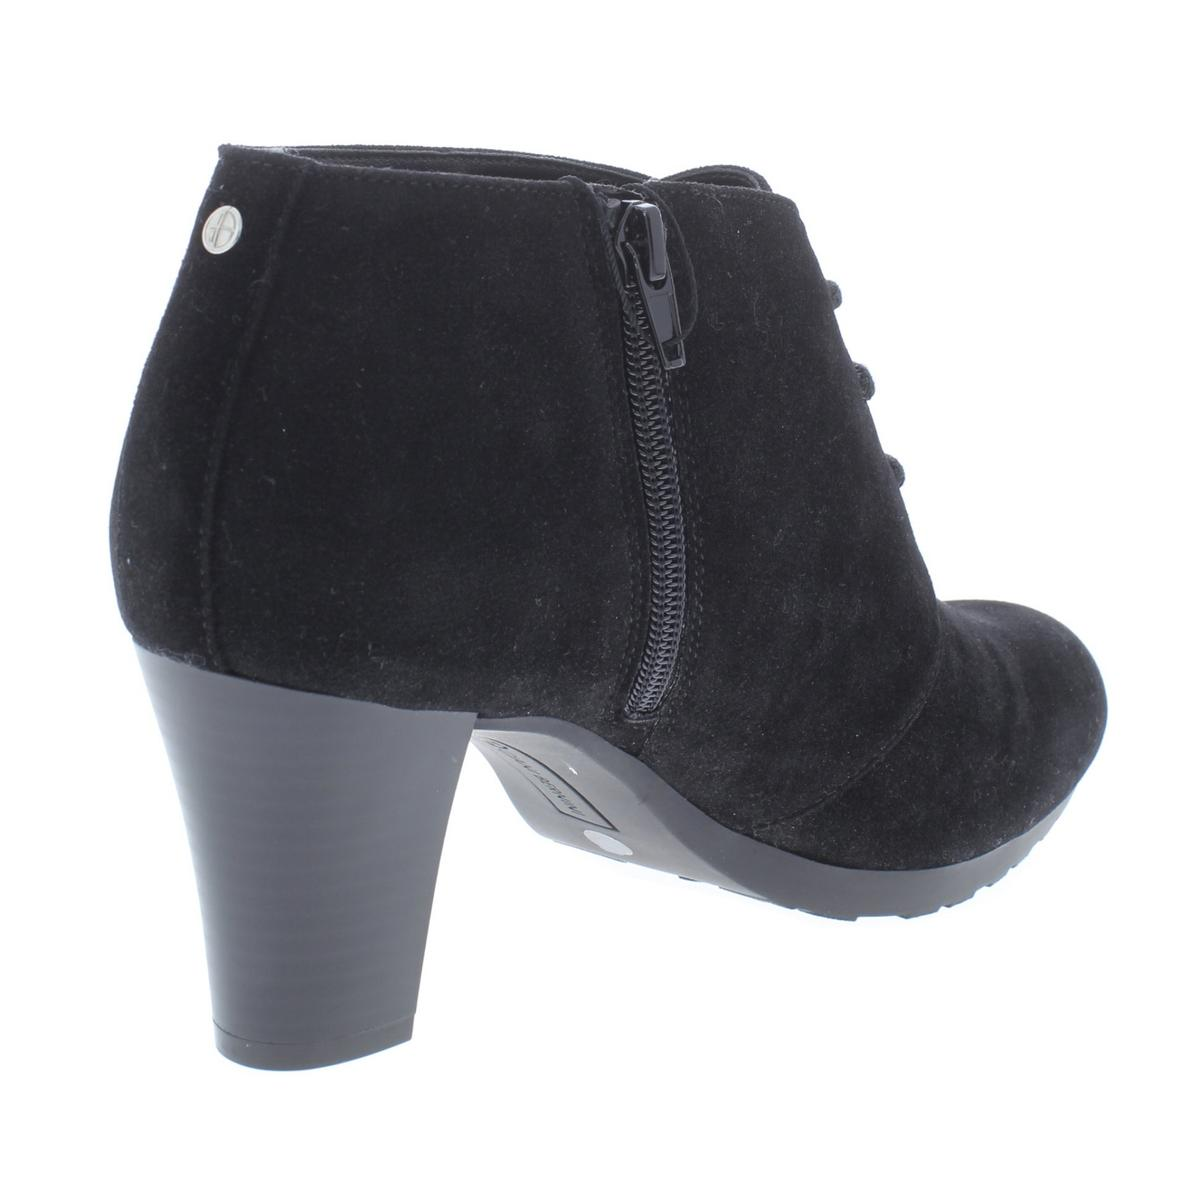 Giani Bernini Donna Memory Orlaa Ankle Derby Memory Donna Foam Booties Shoes BHFO 1953 353ba4